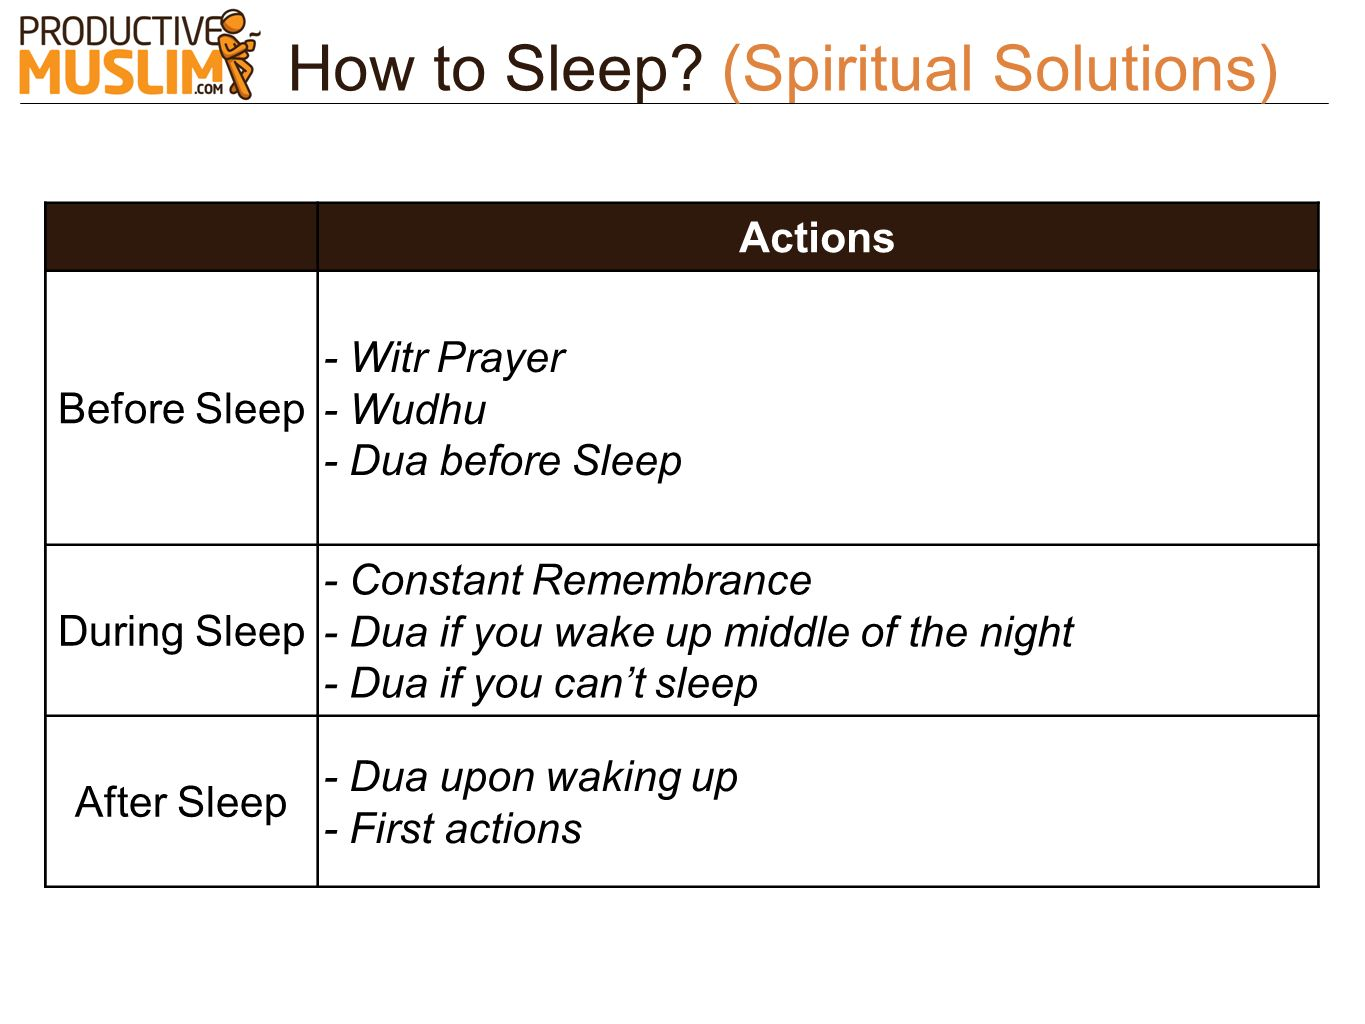 How to Sleep (Spiritual Solutions)